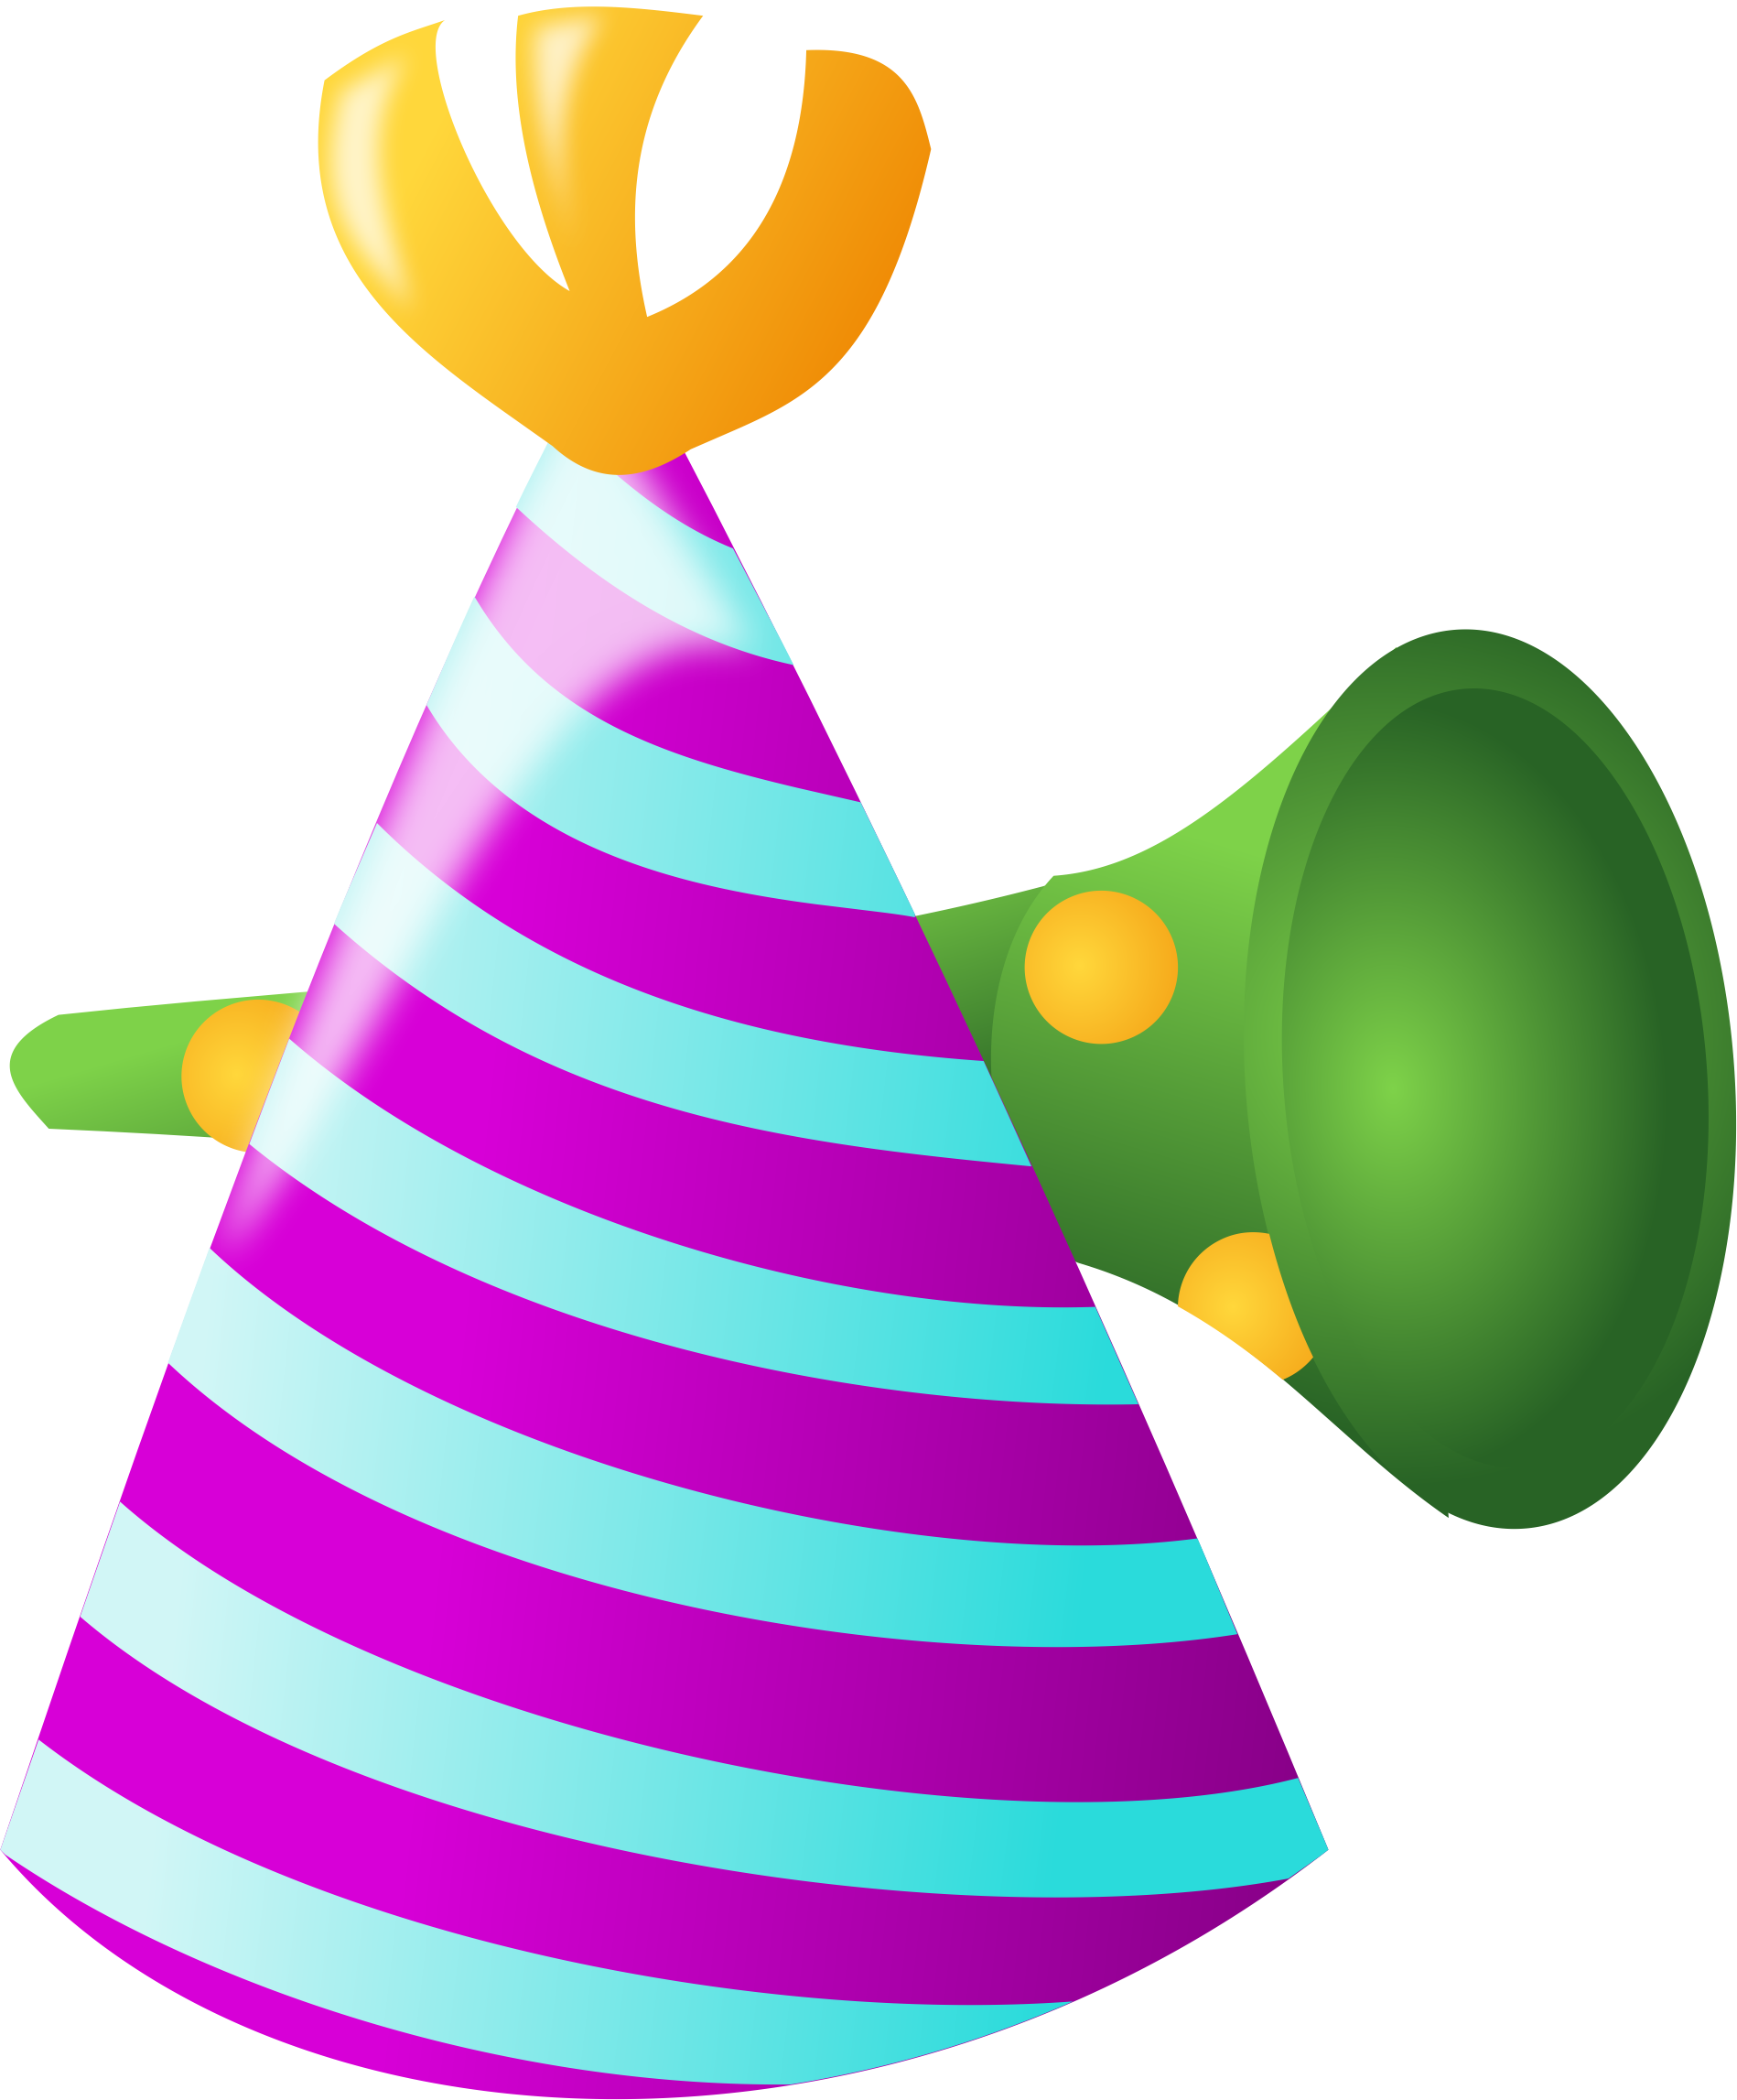 Motivation clipart high. Image for free birthday